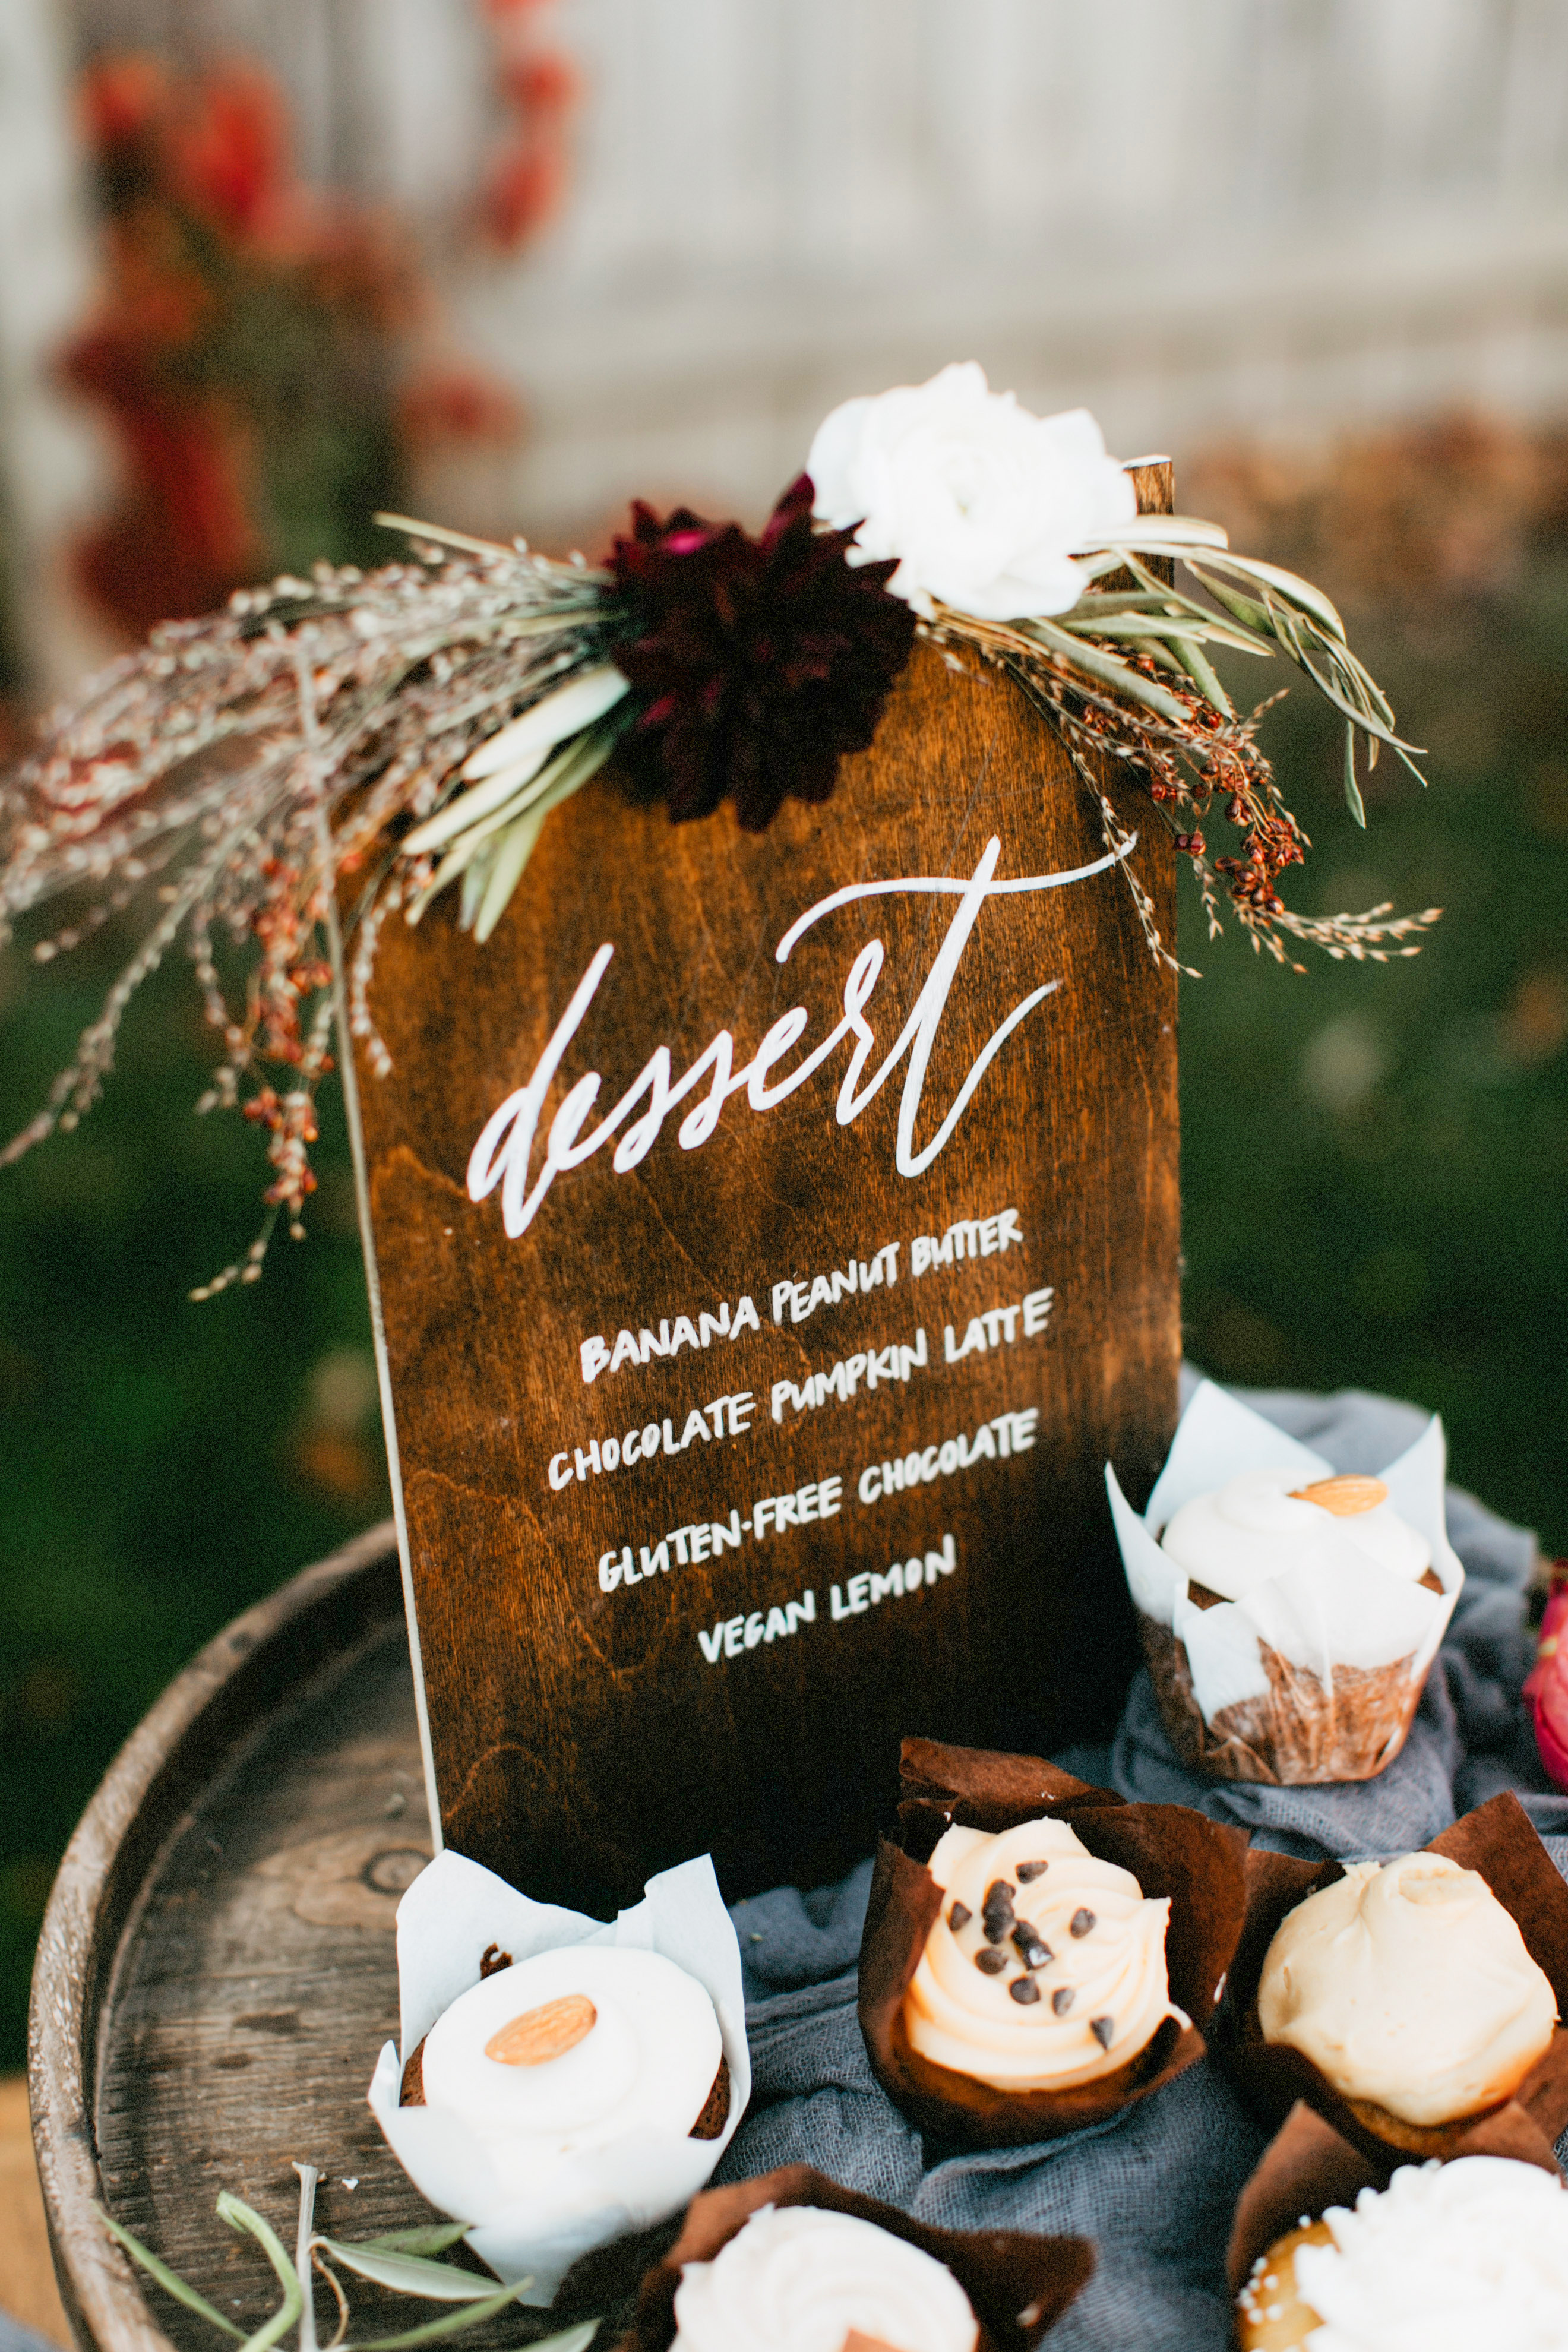 dessert menu ideas dark stained wood board autumn style